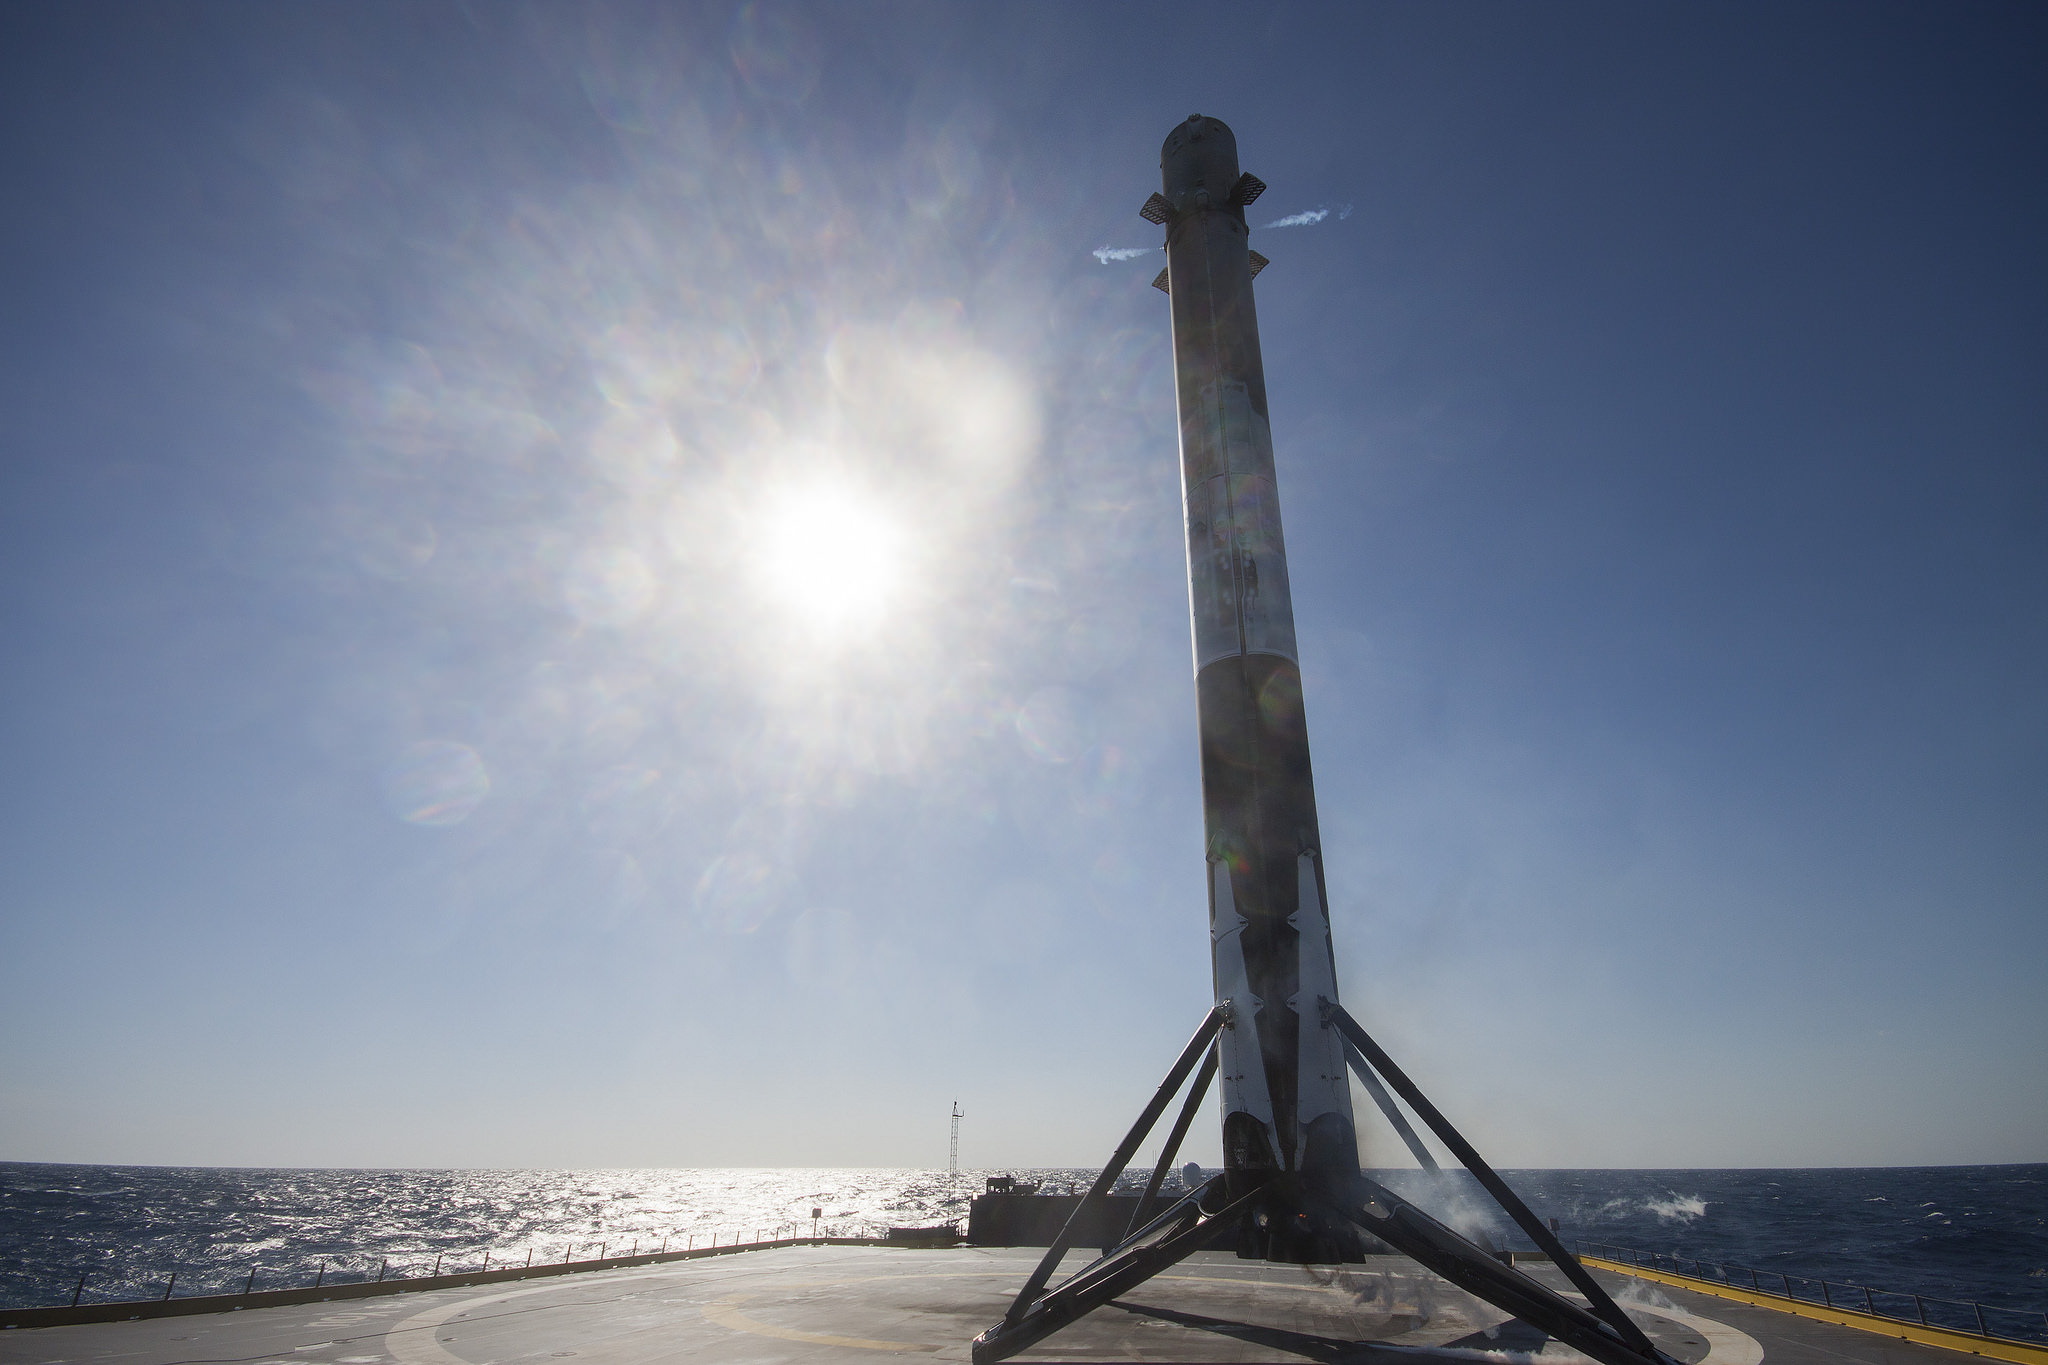 spacex - photo #24